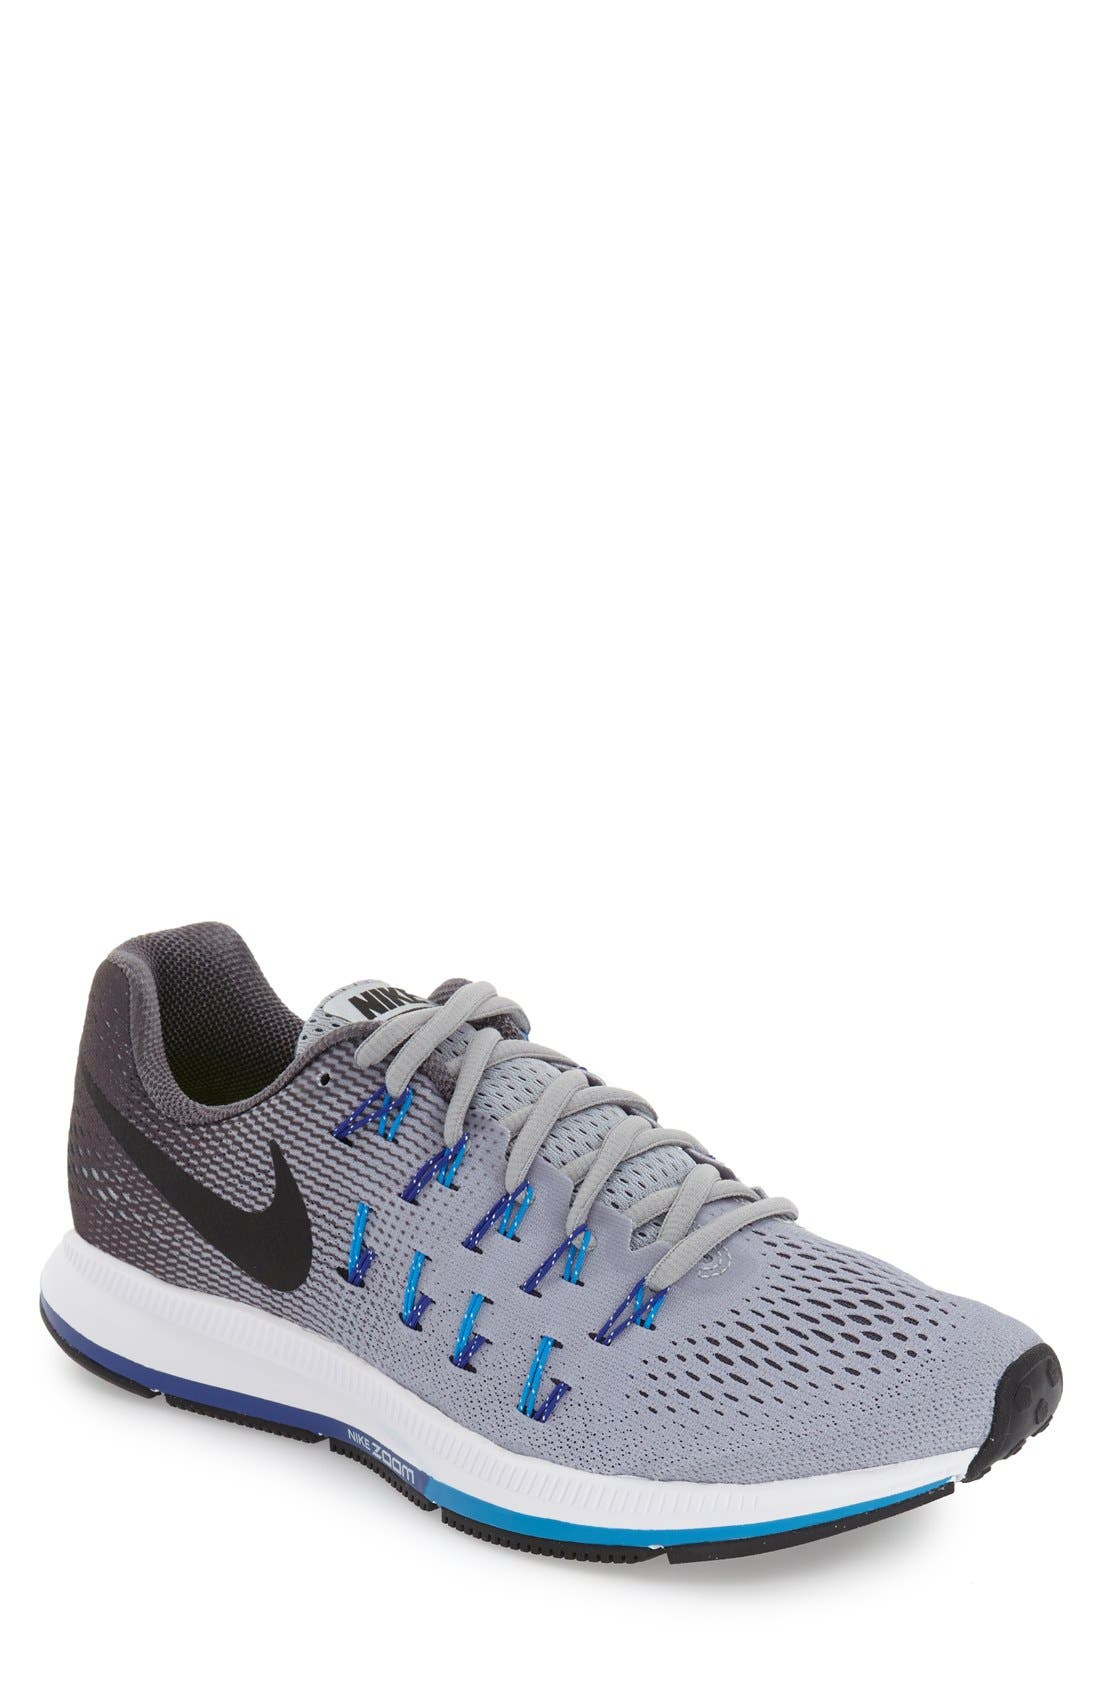 'Air Zoom Pegasus 33' Sneaker,                         Main,                         color, Grey/ Black/ Blue Glow